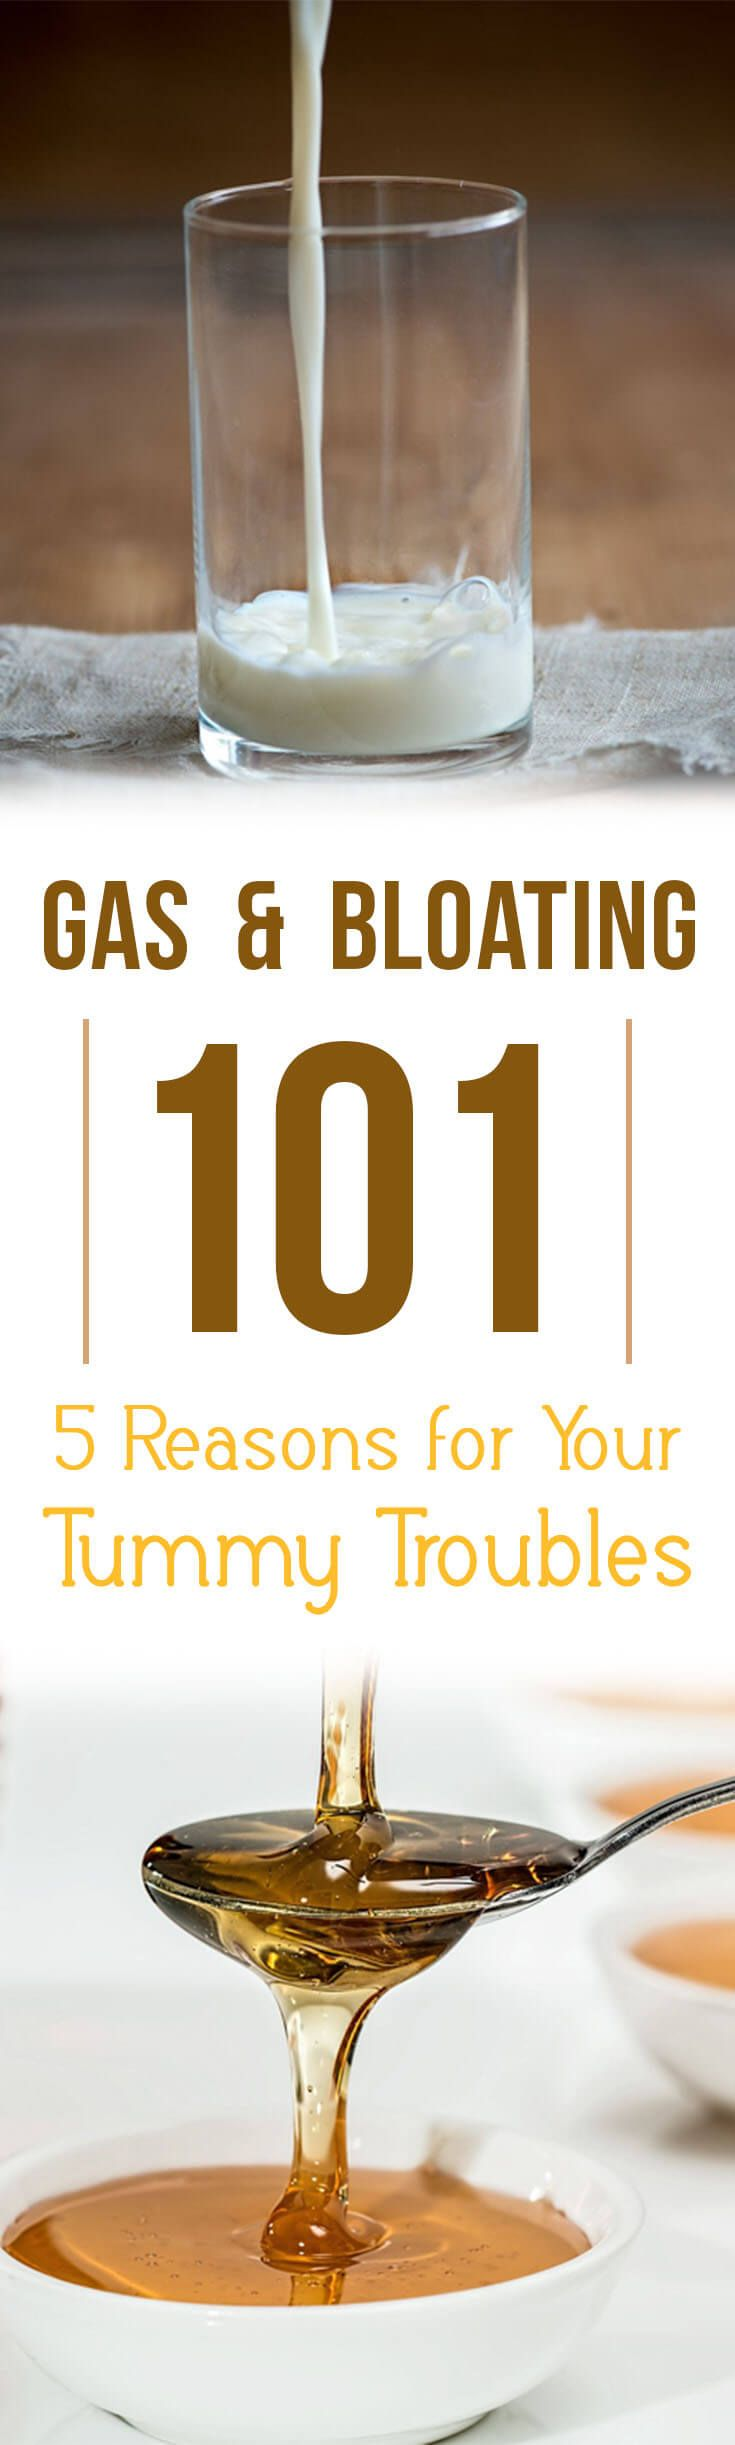 You know I love to talk about gas and bloating, so today we're going through 5 main reasons for your tummy troubles.